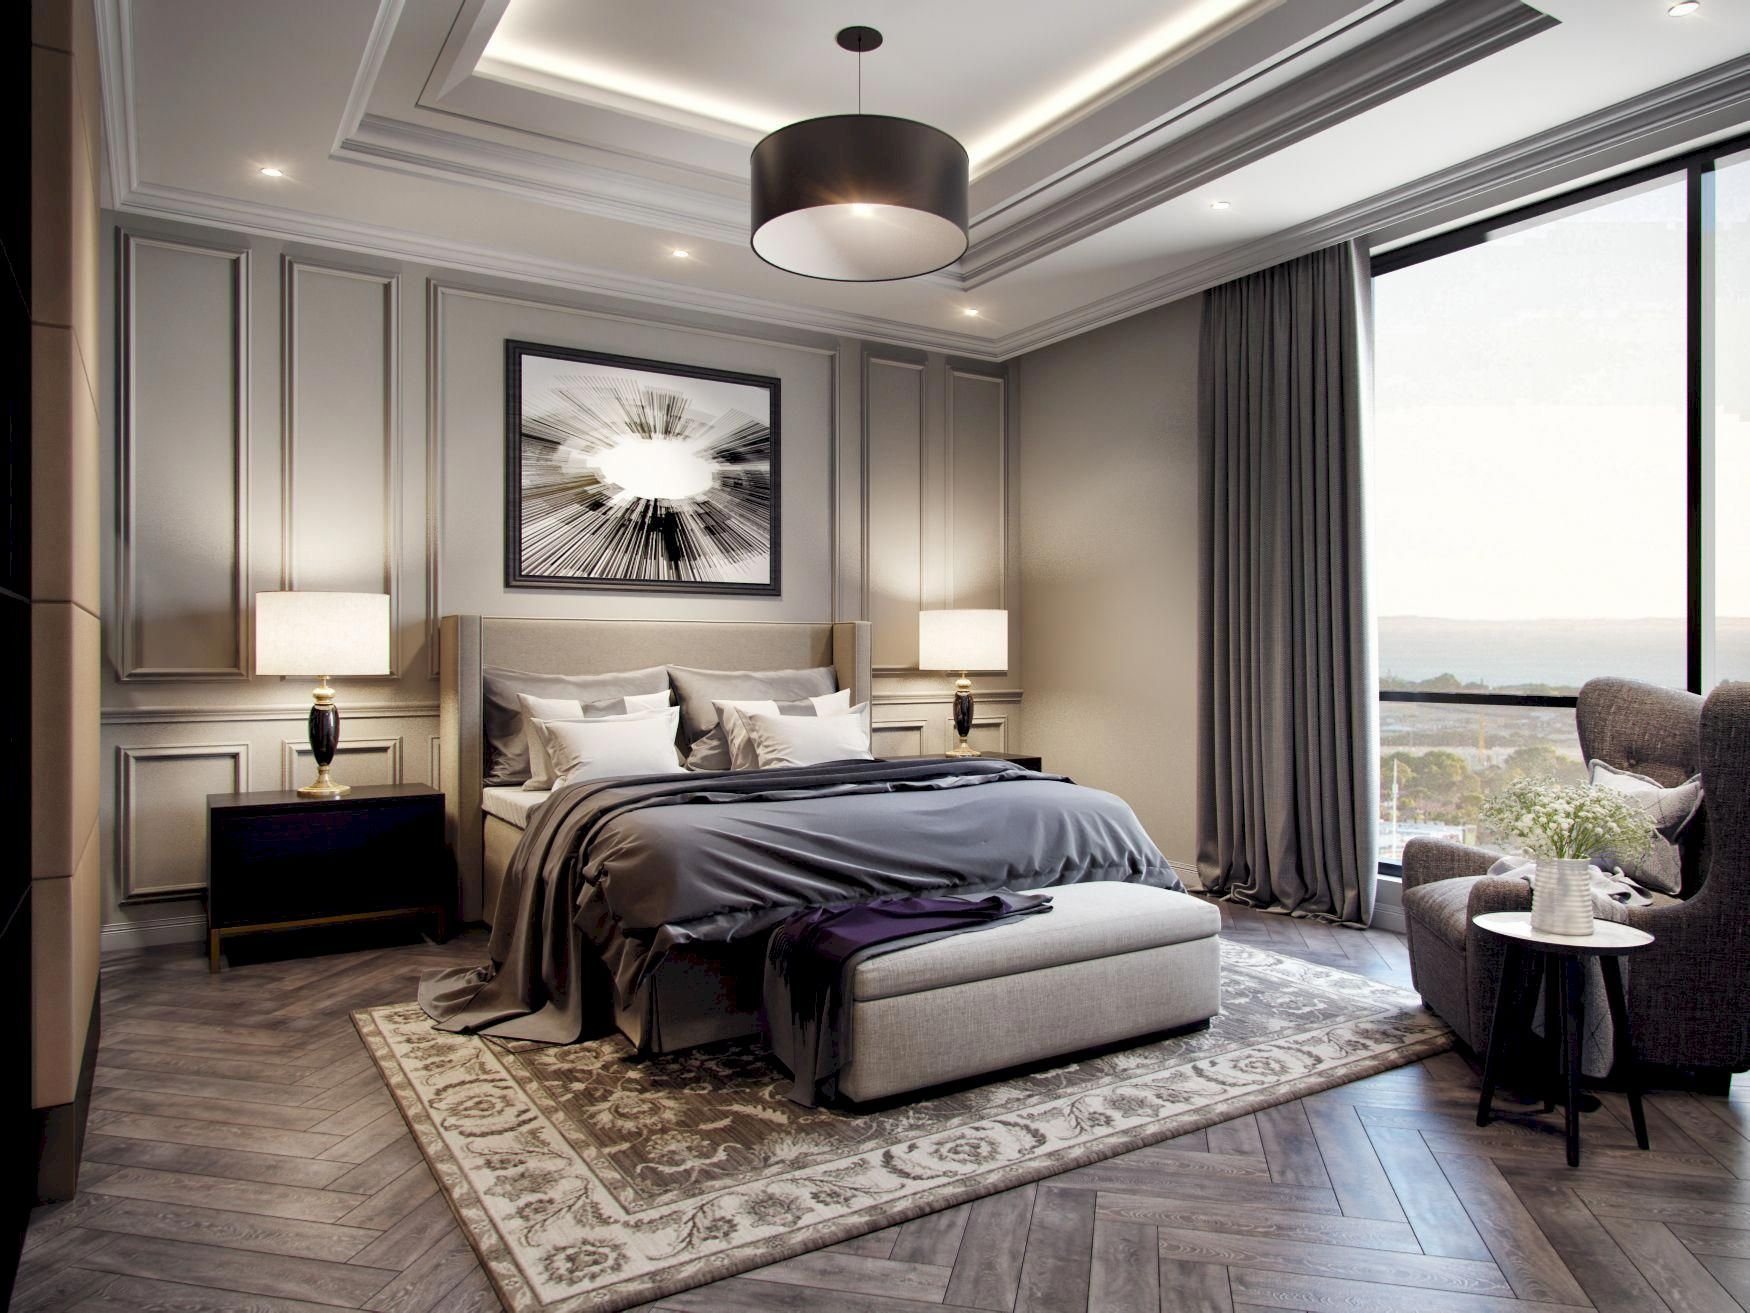 48 Impressive Classic Modern Bedroom Design Ideas Luxury Bedroom Master Luxurious Bedrooms Modern Master Bedroom